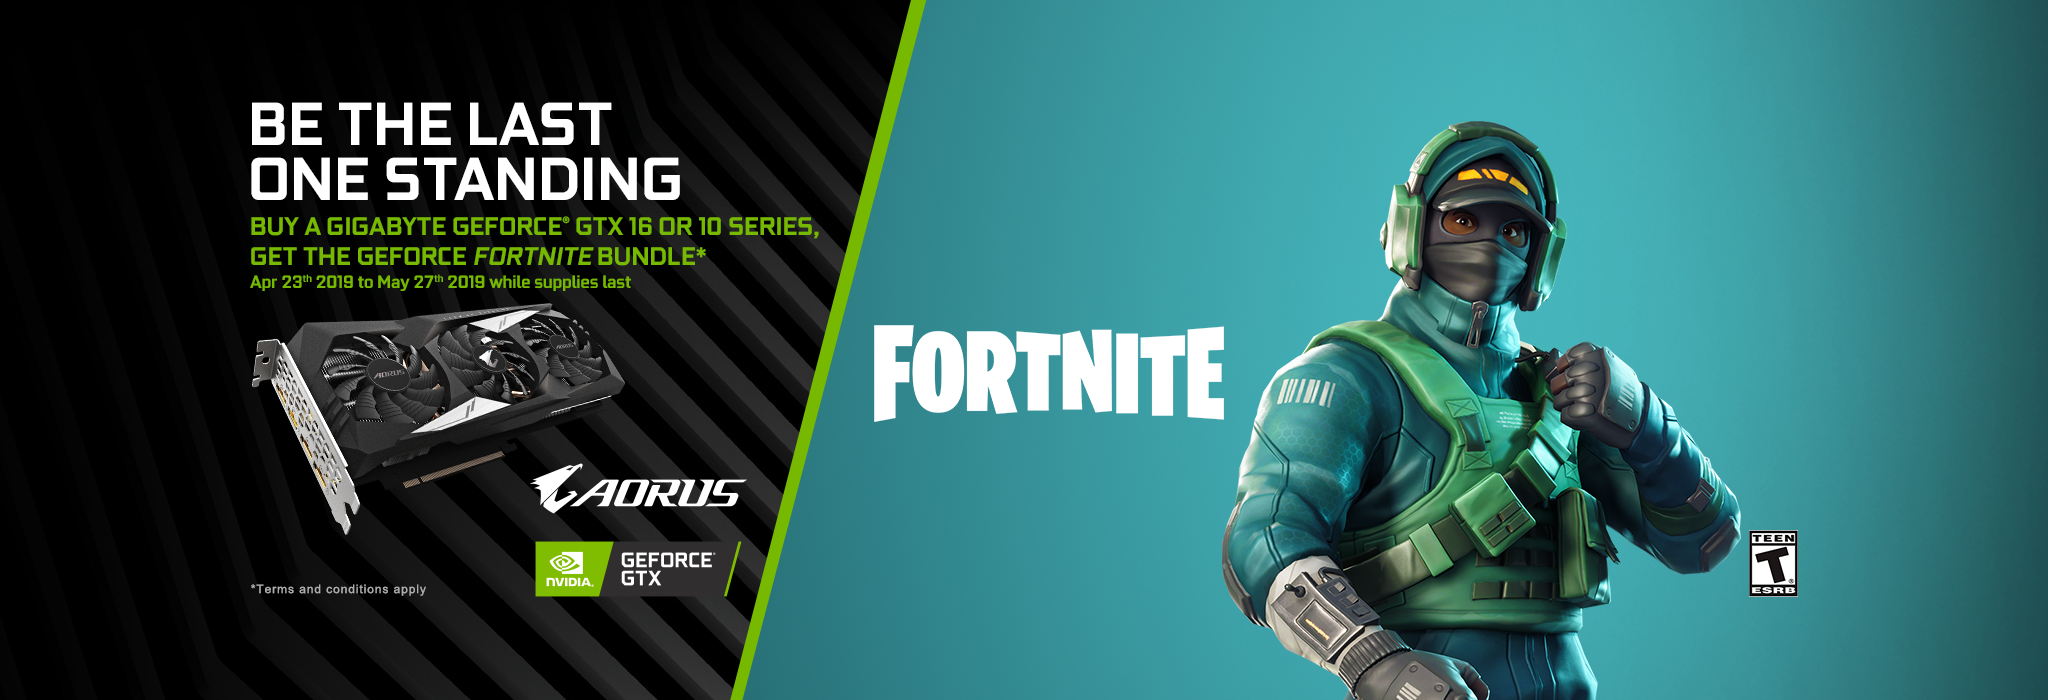 buy a qualified gigabyte gtx and get fortnite bundle apac - code cadeau fortnite